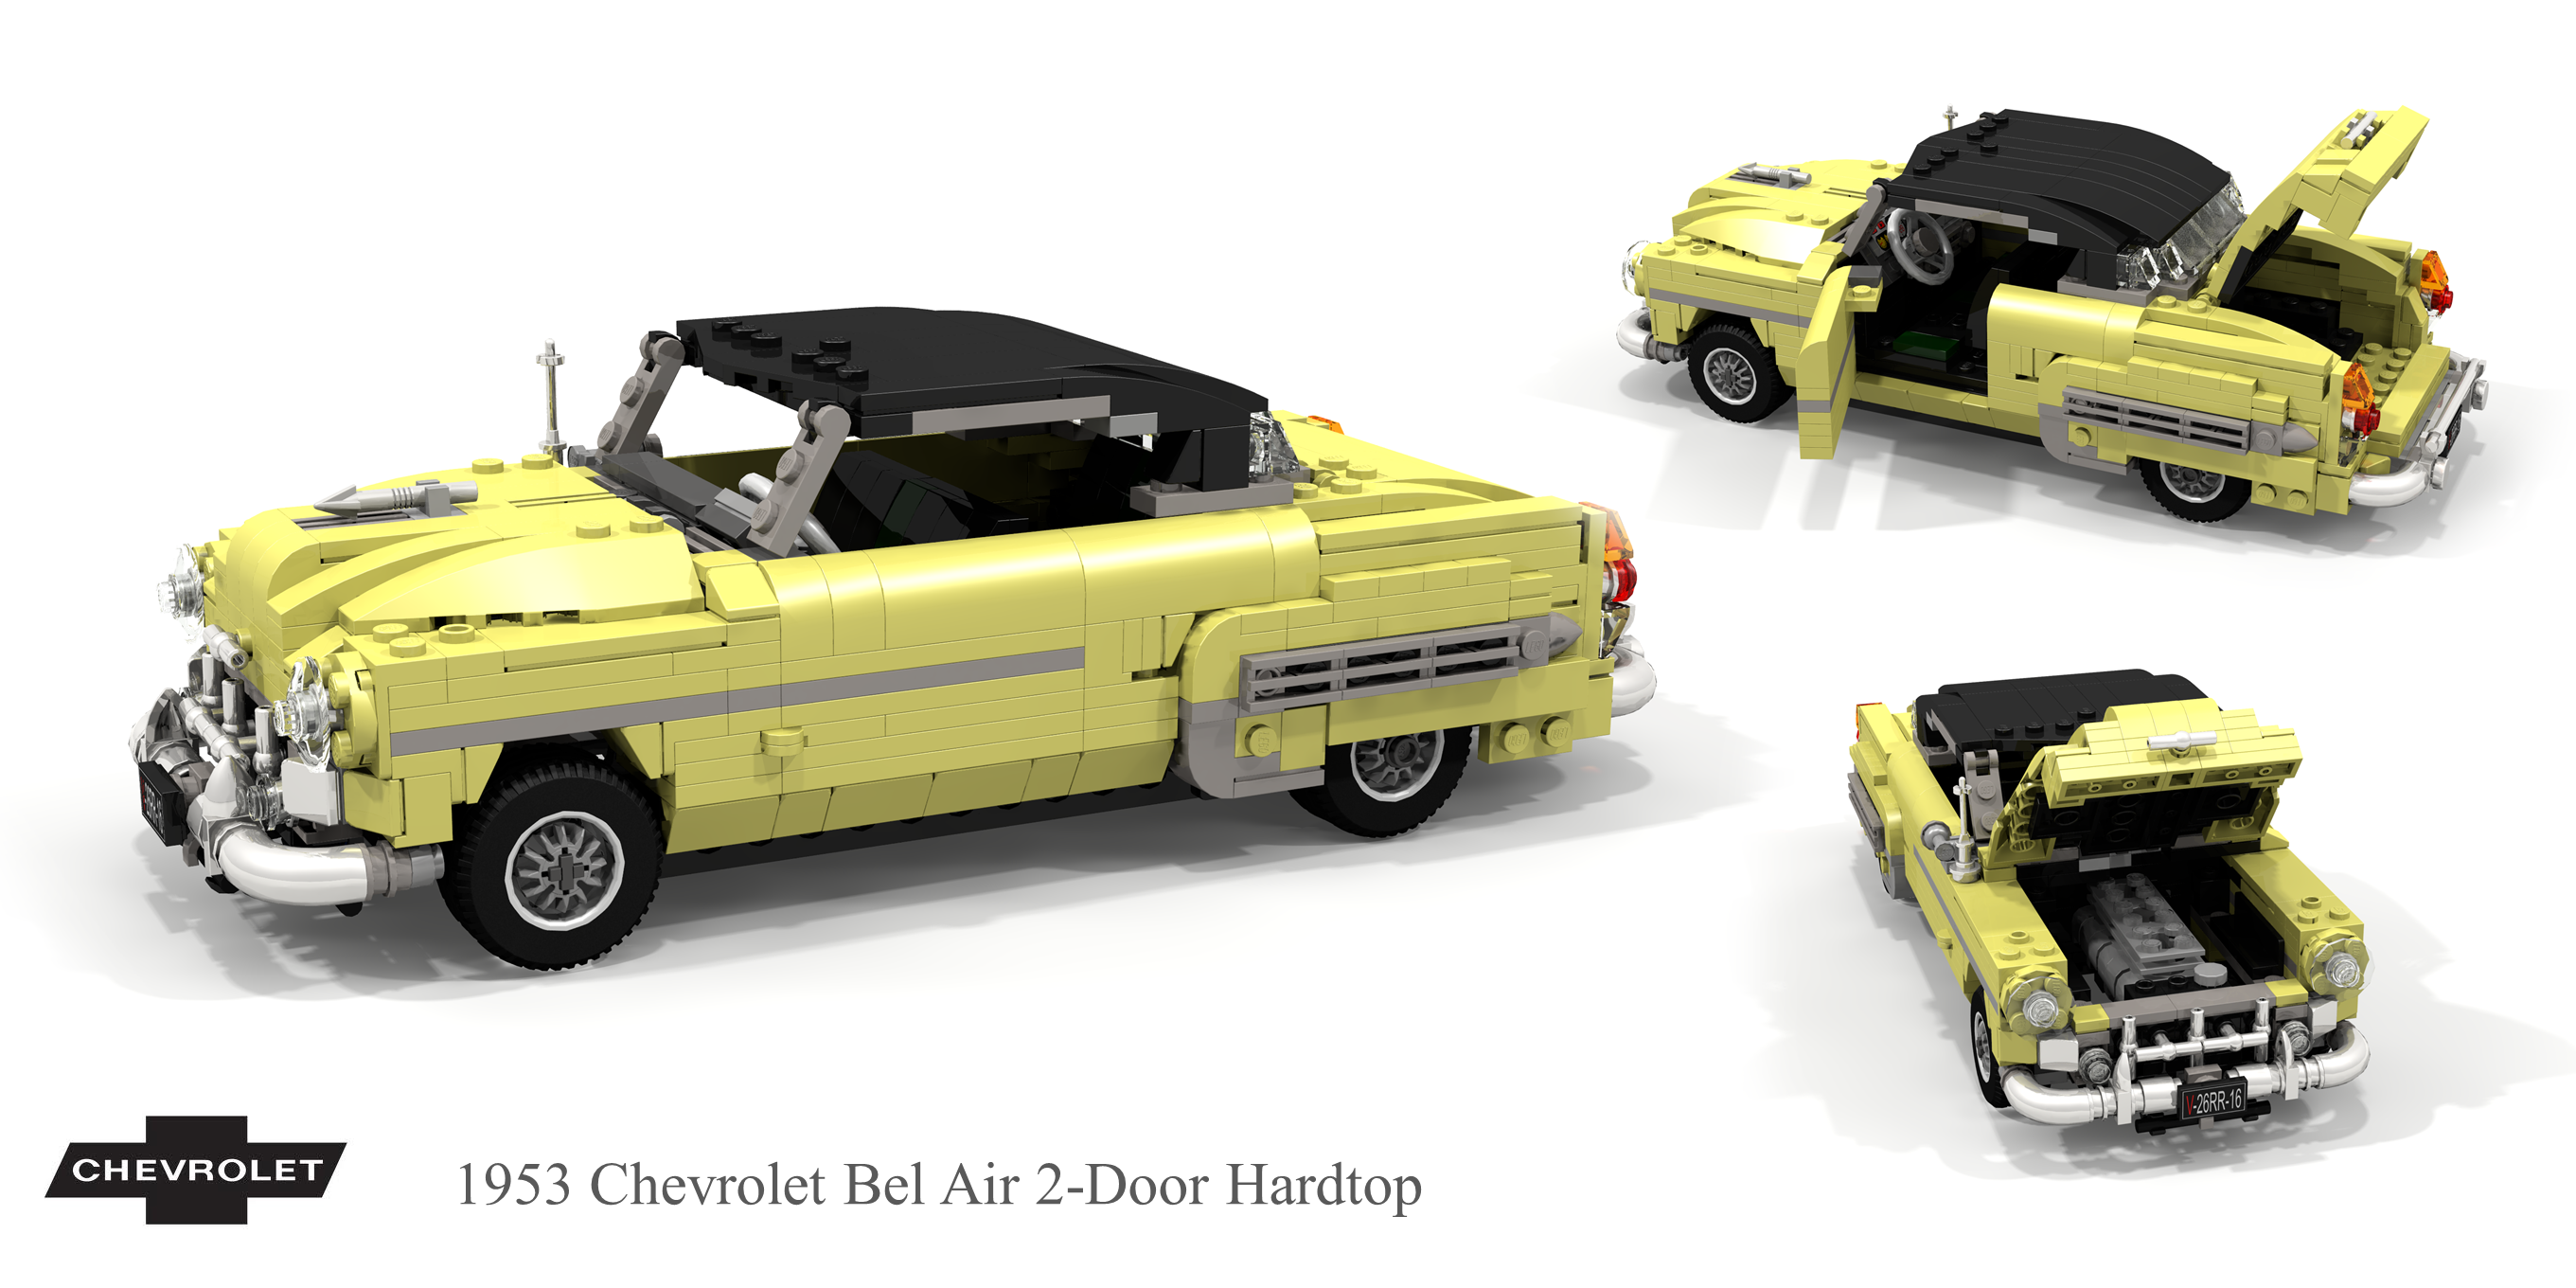 chevrolet_1953_bel_air_hardtop_coupe_08.png